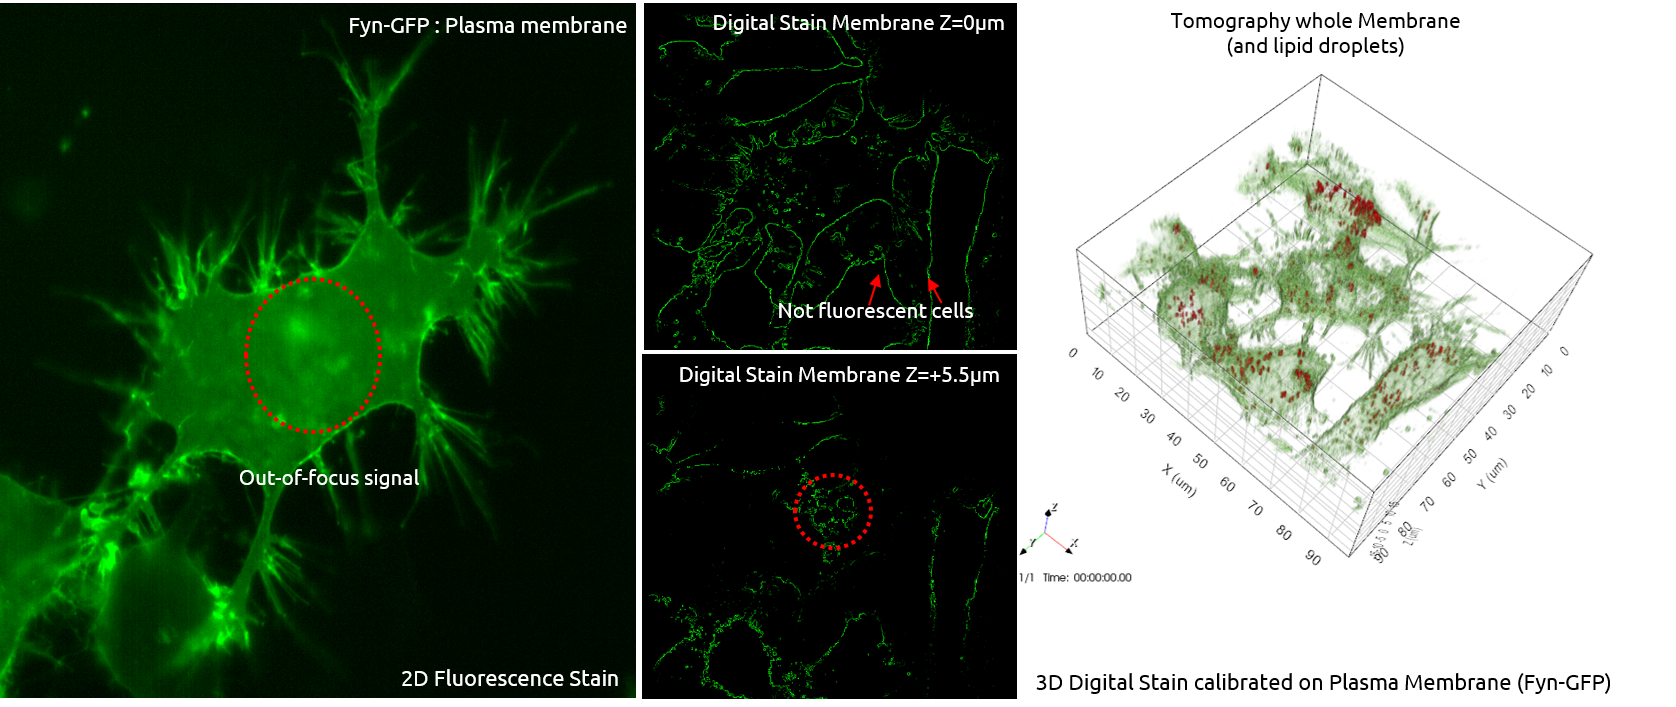 Live Cell Imaging Microscope 3d Explorer Fluo Looking Inside Plant Diagram Step 3 Another Reduce Artefacts Get More And Reliable Measurements Identify Out Of Focus Signals Recover Lost Information Achieve Homogeneous Staining